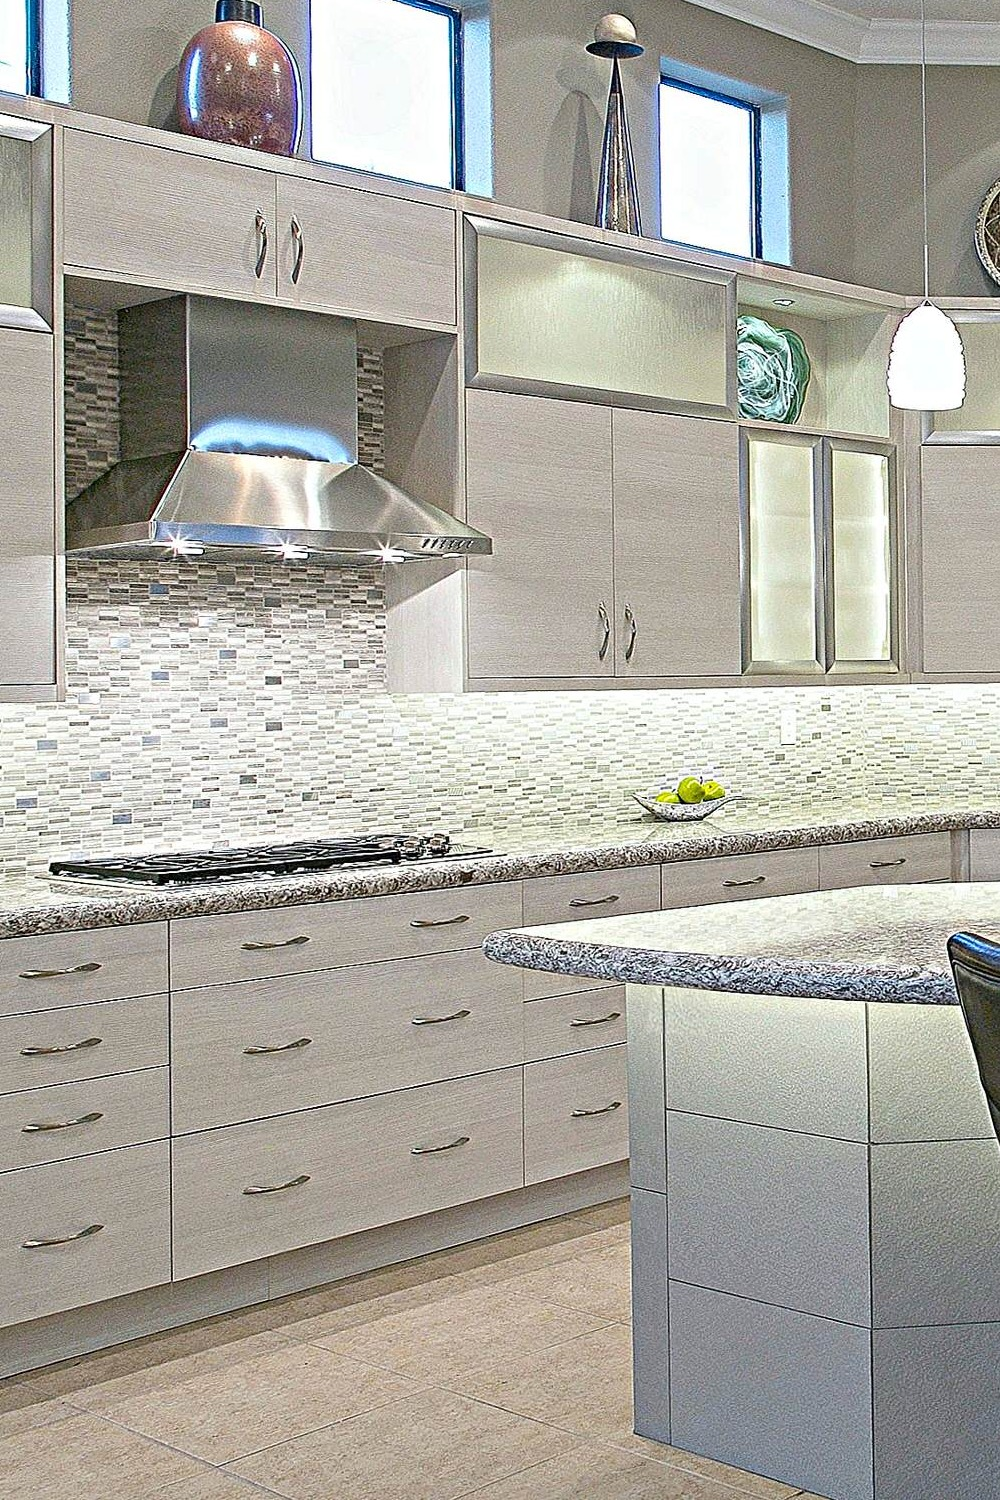 35 Low Maintenance Kitchen Countertops Options